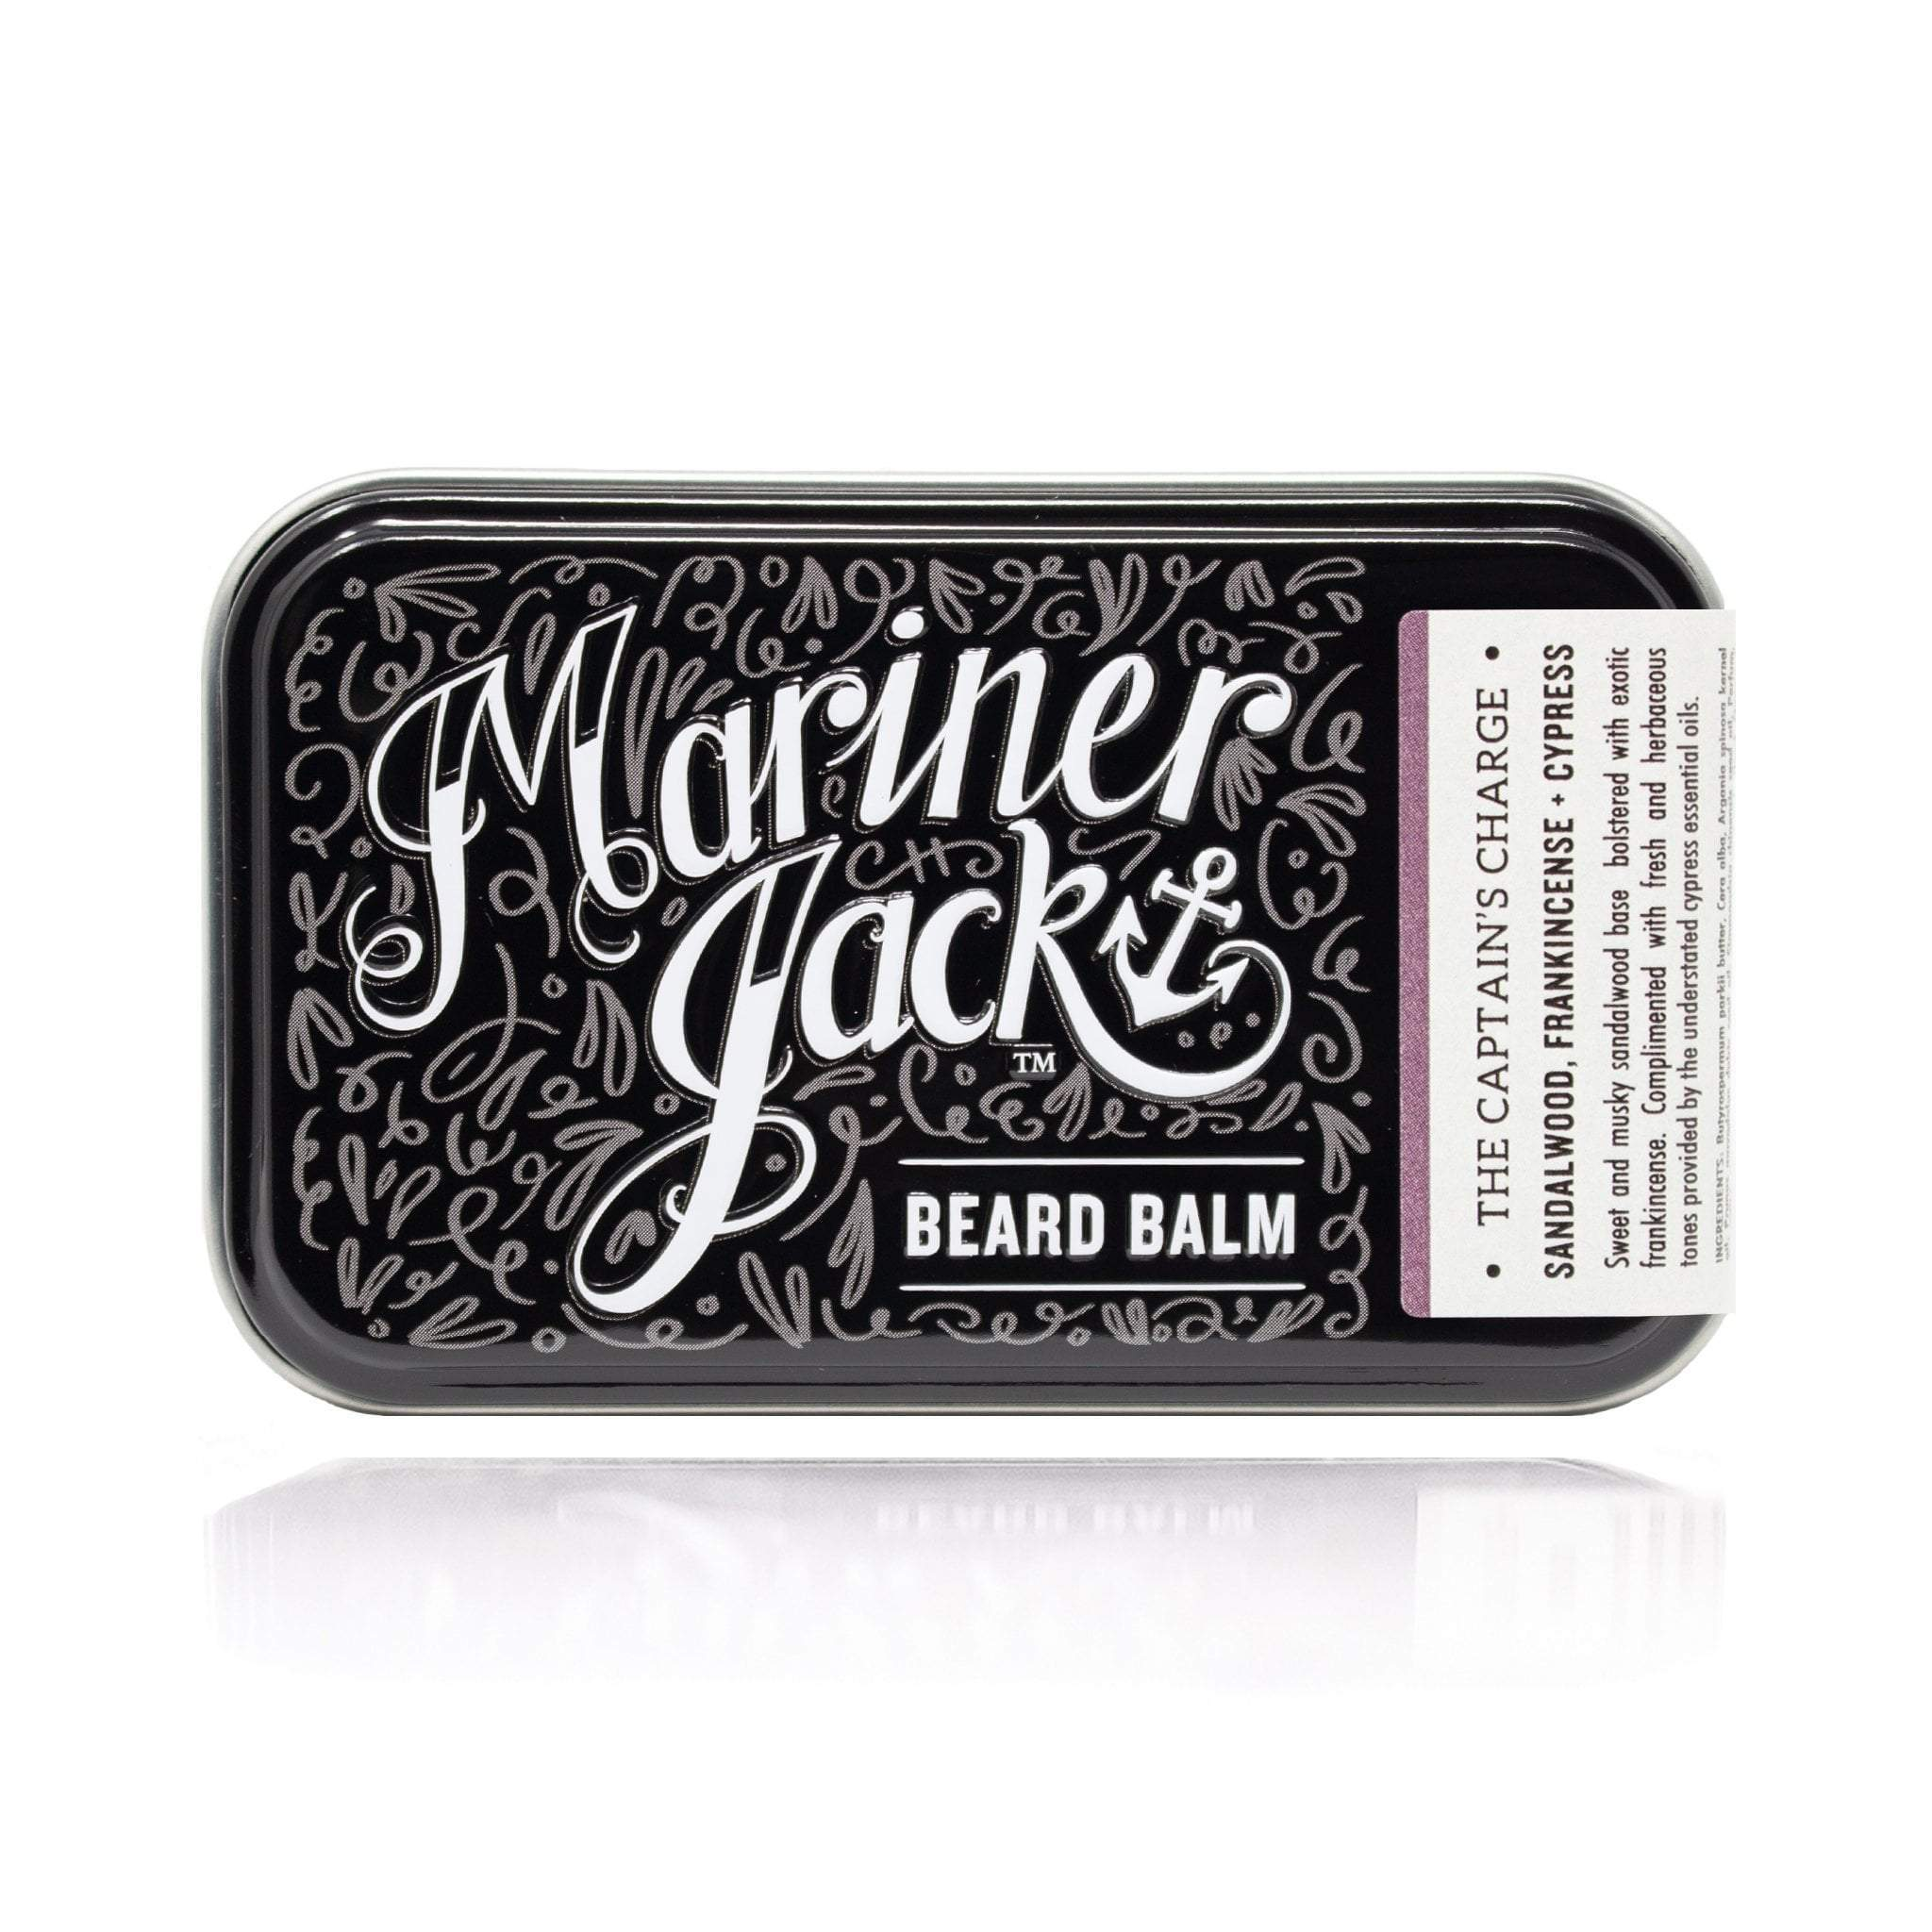 Review of the Mariner Jack The Captains Charge Beard Balm